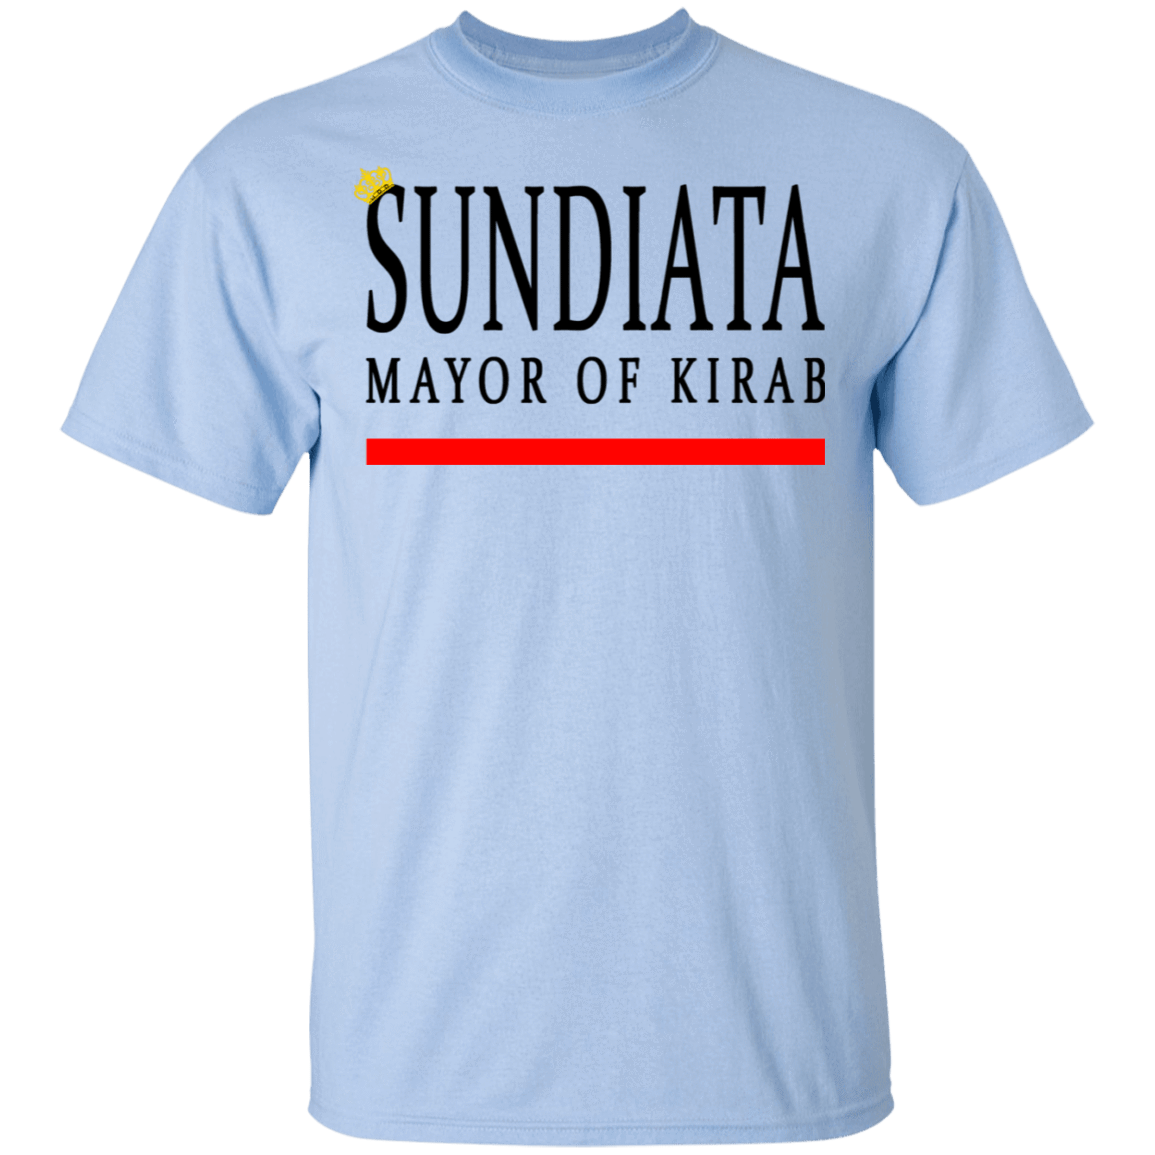 Sundiata Mayor Of Kirab T-Shirts, Hoodies, Tank 22-9800-79999094-47430 - Tee Ript